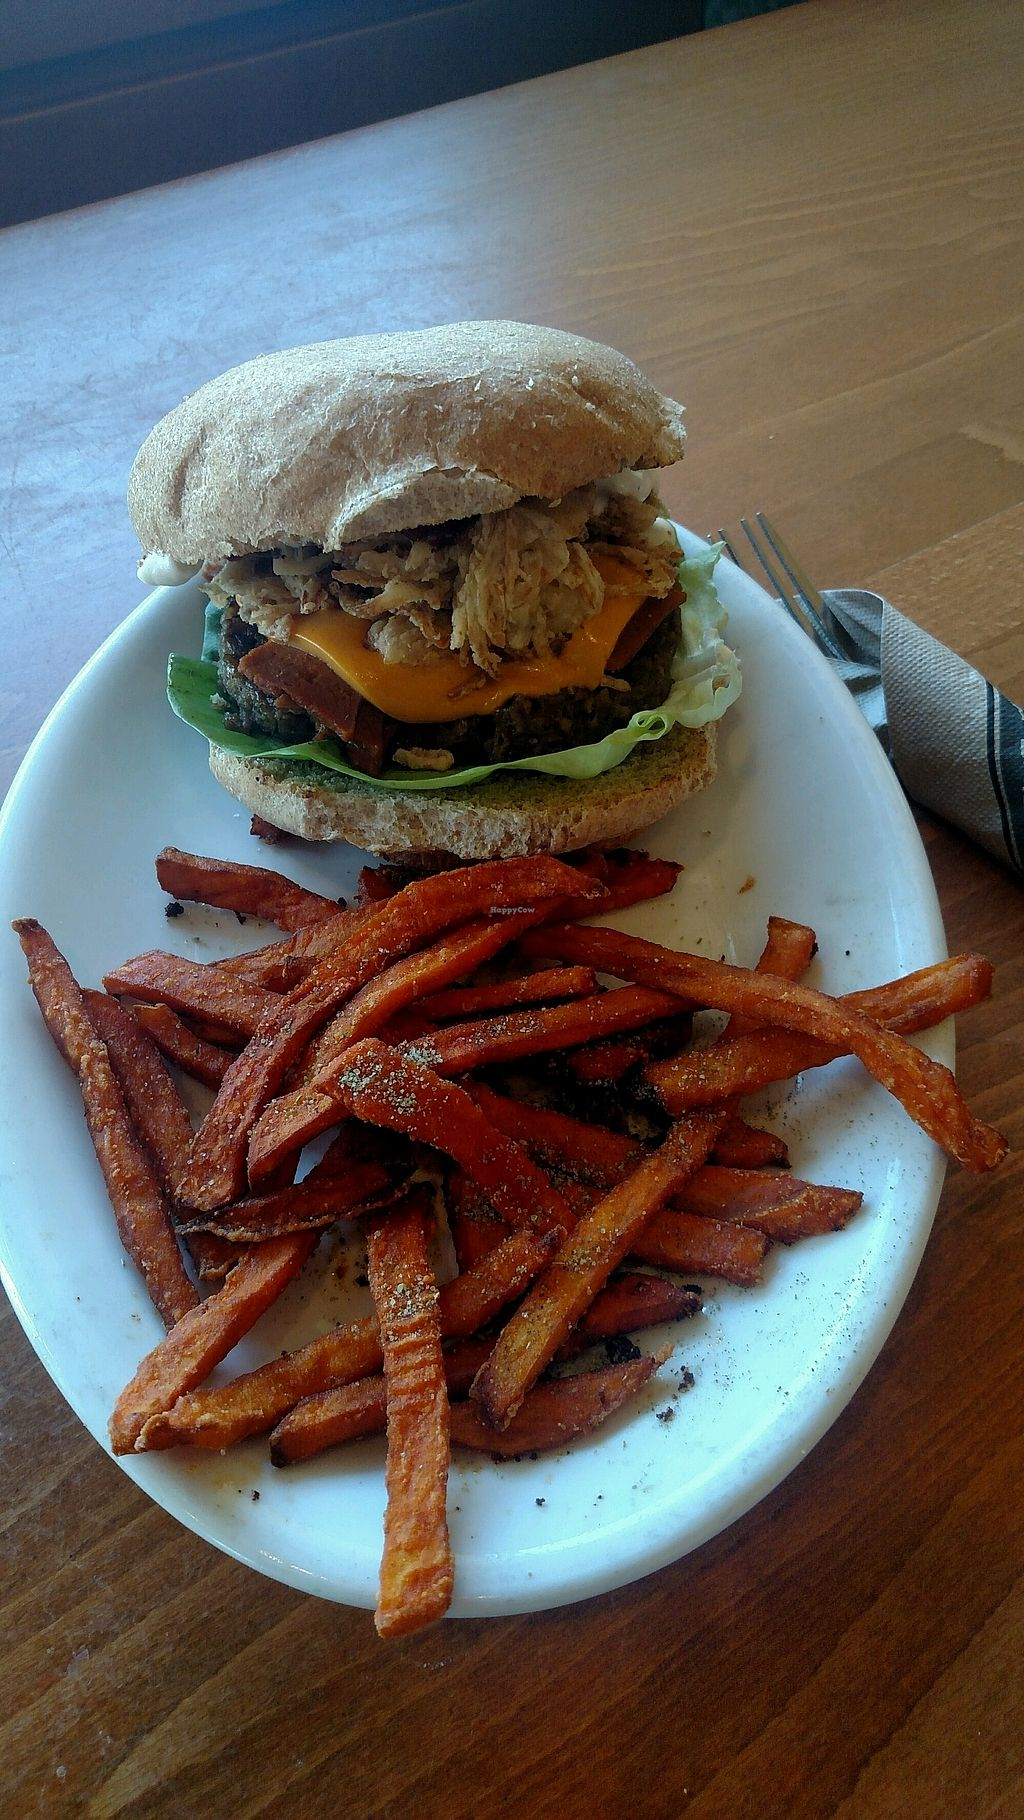 """Photo of Native Foods - Claremont Mesa  by <a href=""""/members/profile/GrinLaughPlay"""">GrinLaughPlay</a> <br/>Big Ol Burger <br/> November 16, 2017  - <a href='/contact/abuse/image/51357/326263'>Report</a>"""